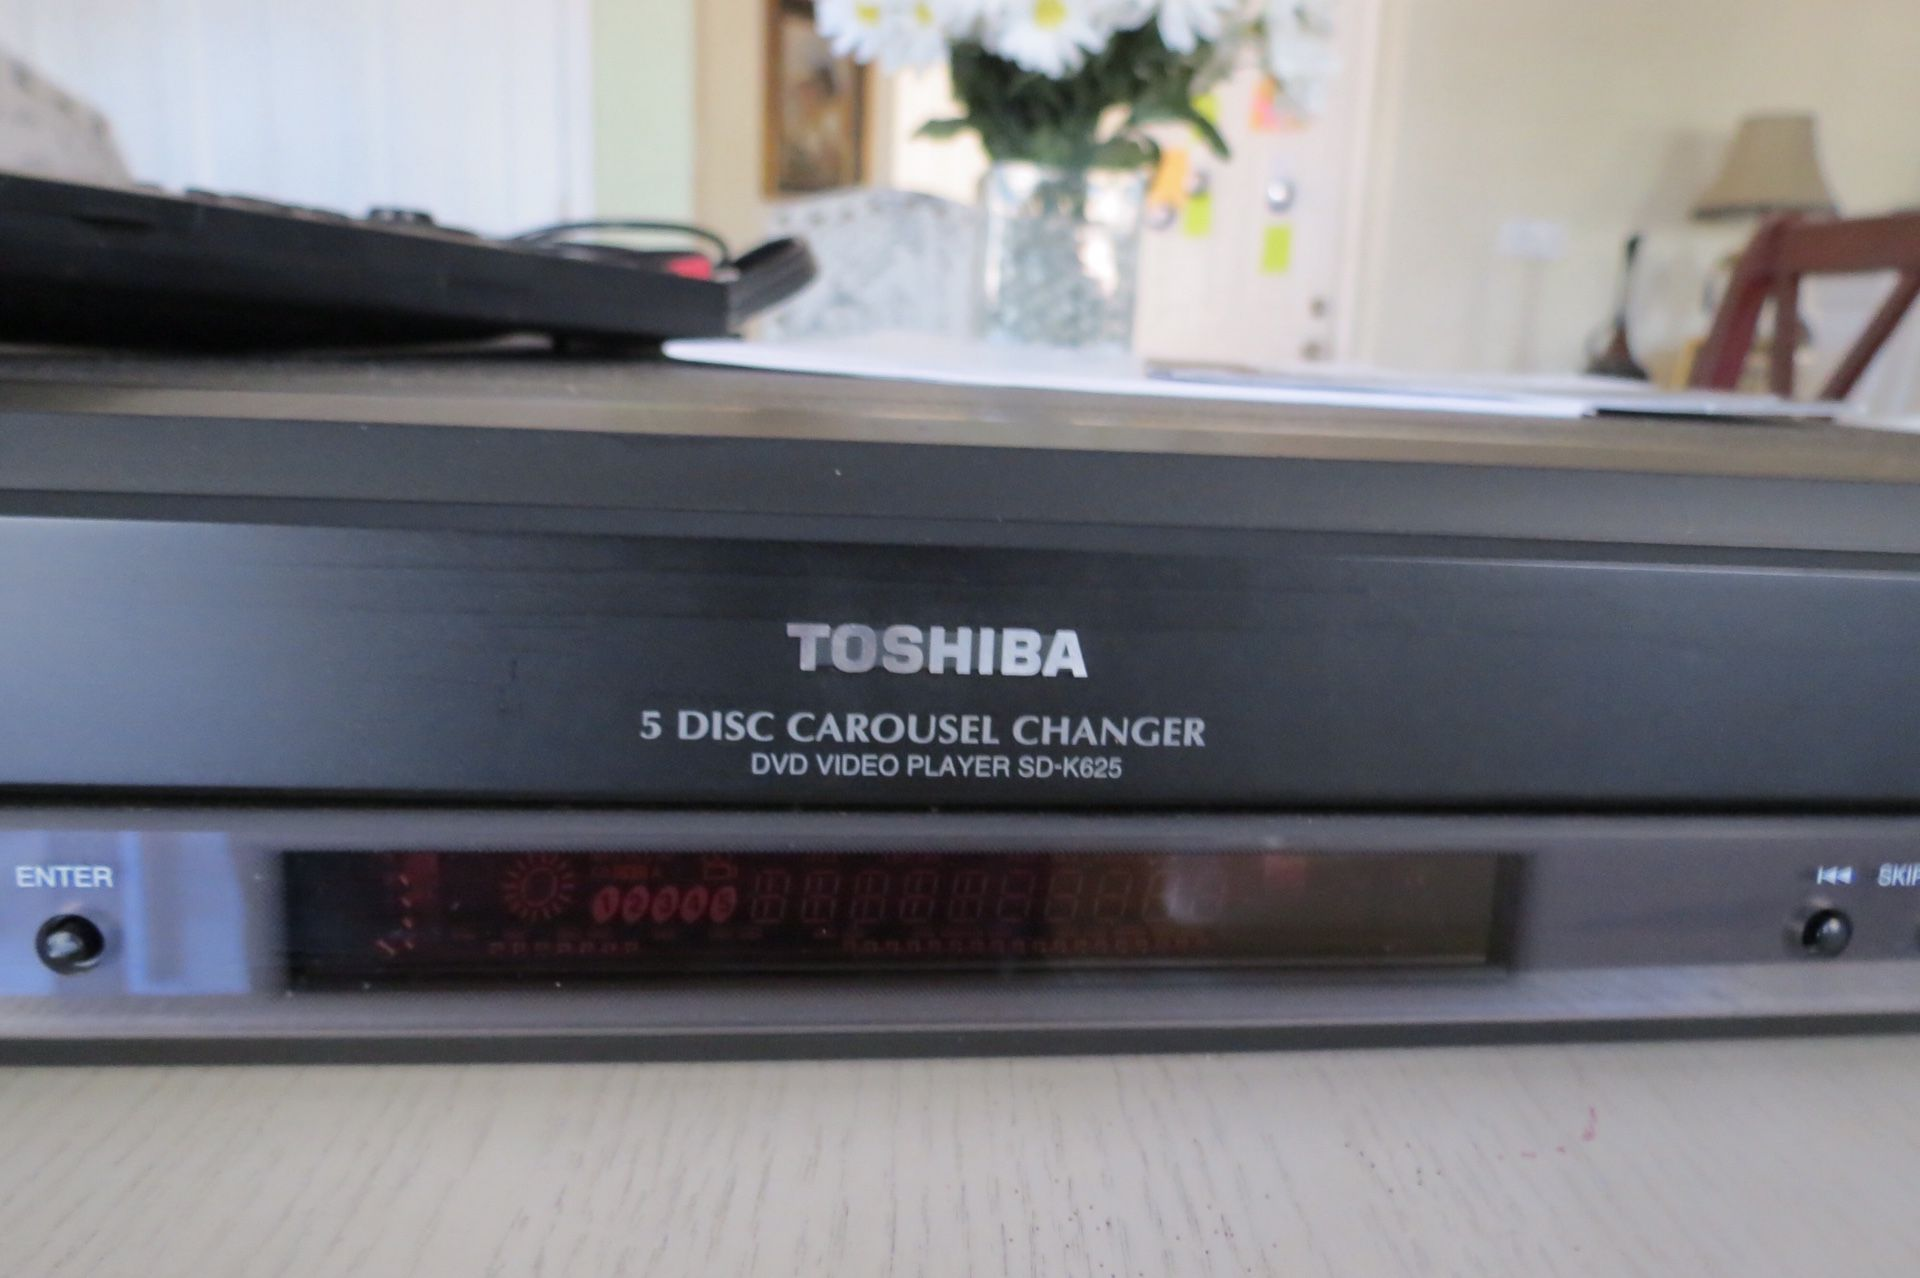 Toshiba 5 Disc DVD player with Remote AV Cord and Owner's Manual